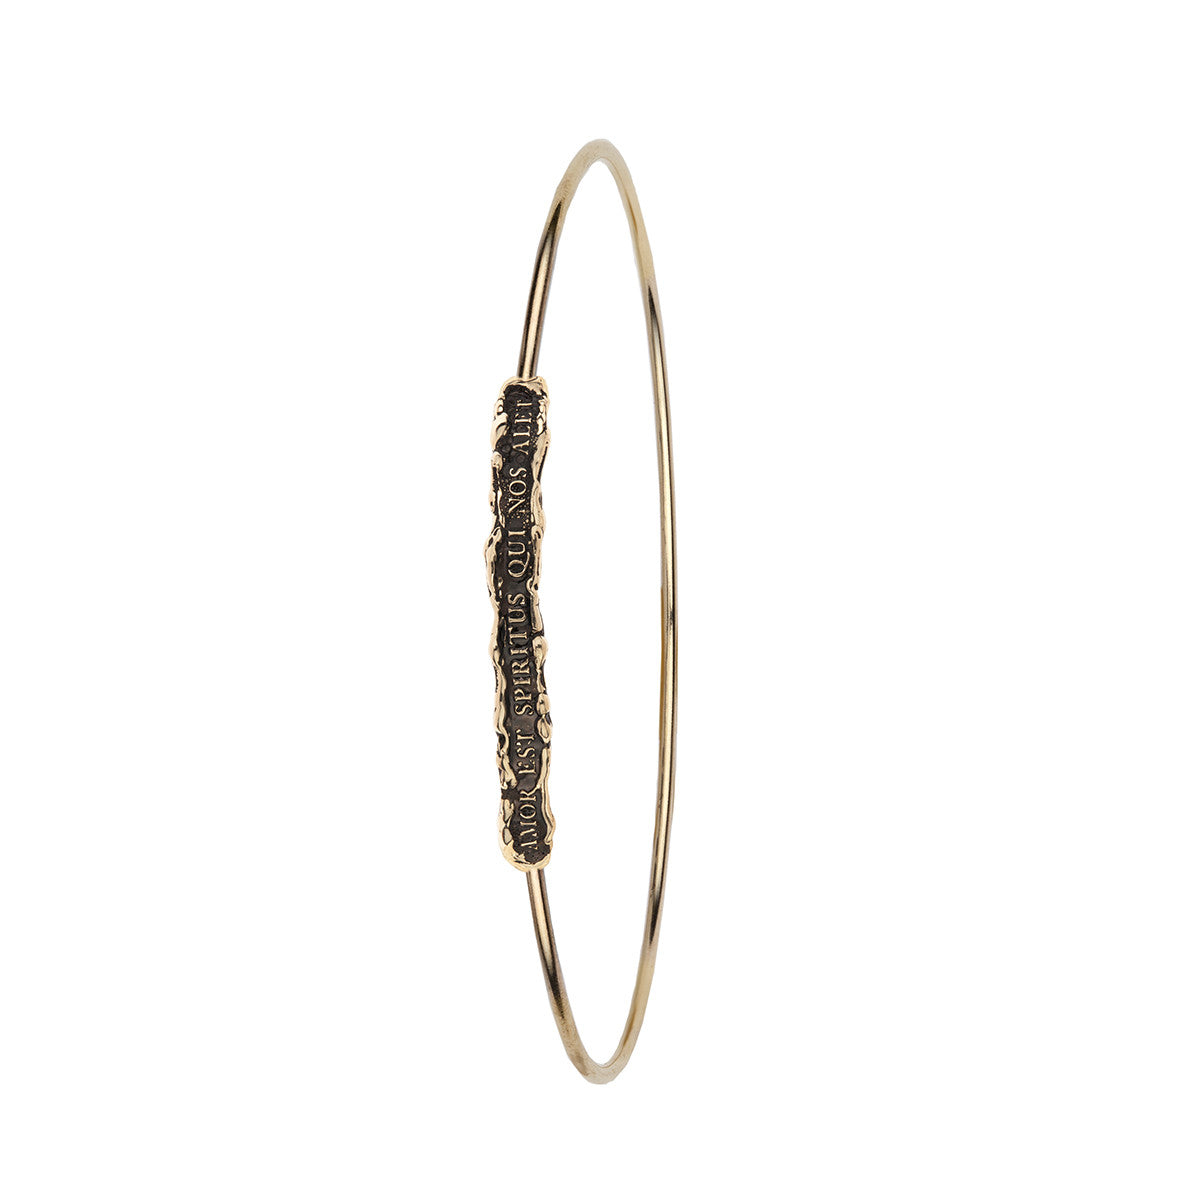 Amor Est Spiritus Qui Nos Alet (Love is the Breath that Sustains Us) 14K Gold Polished Bangle